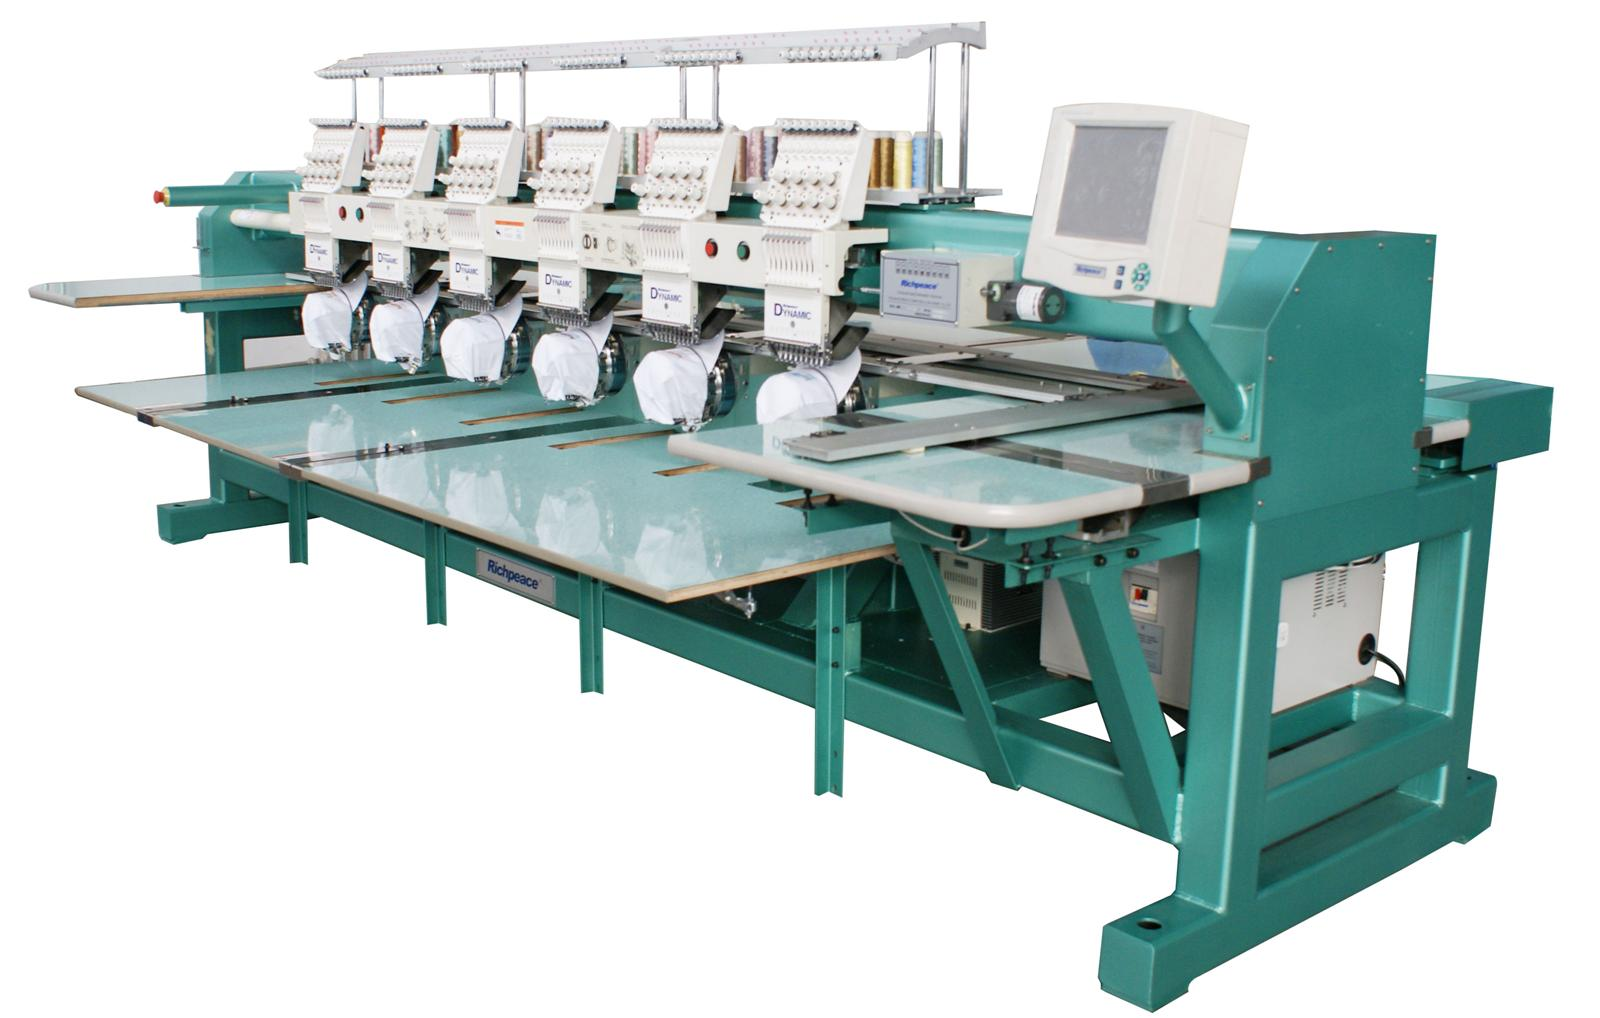 embroidery base maker tajima embroidery machines